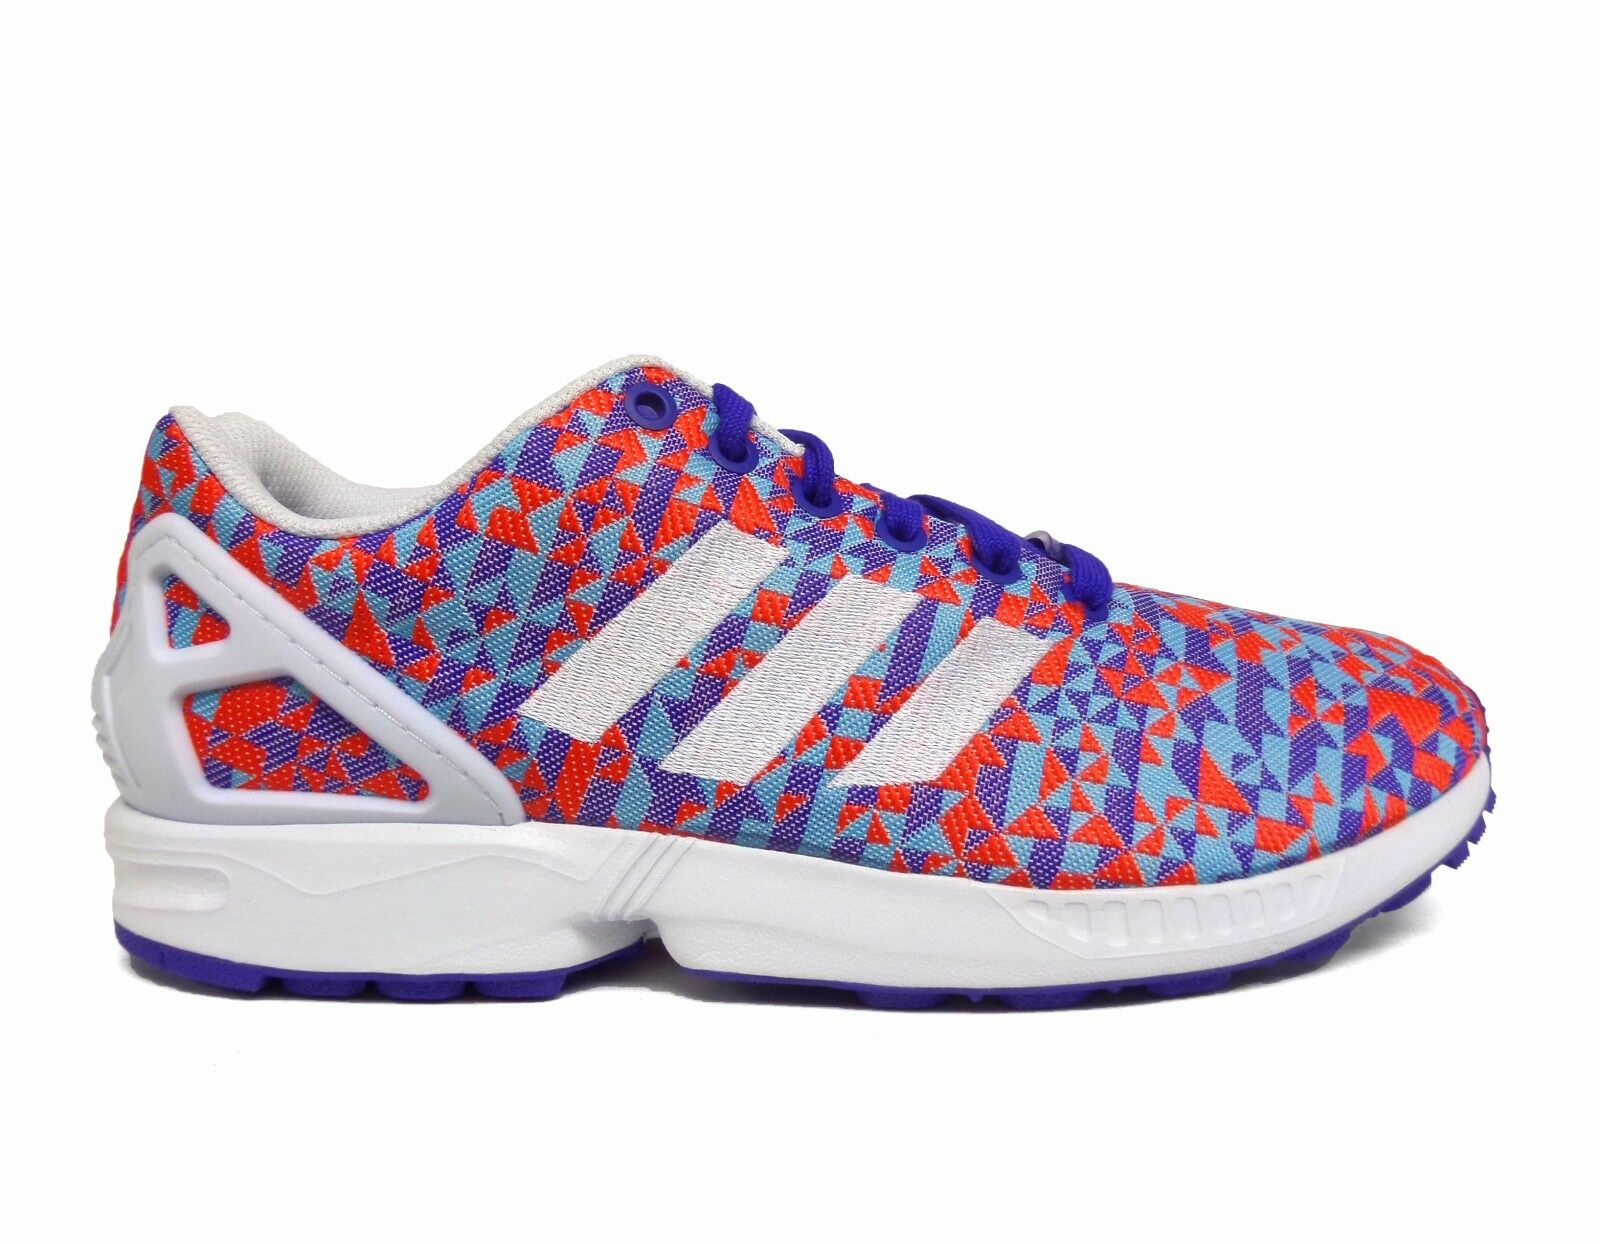 Adidas Men's ZX FLUX WEAVE Shoes Night Flash/White B34473 a1 Brand discount